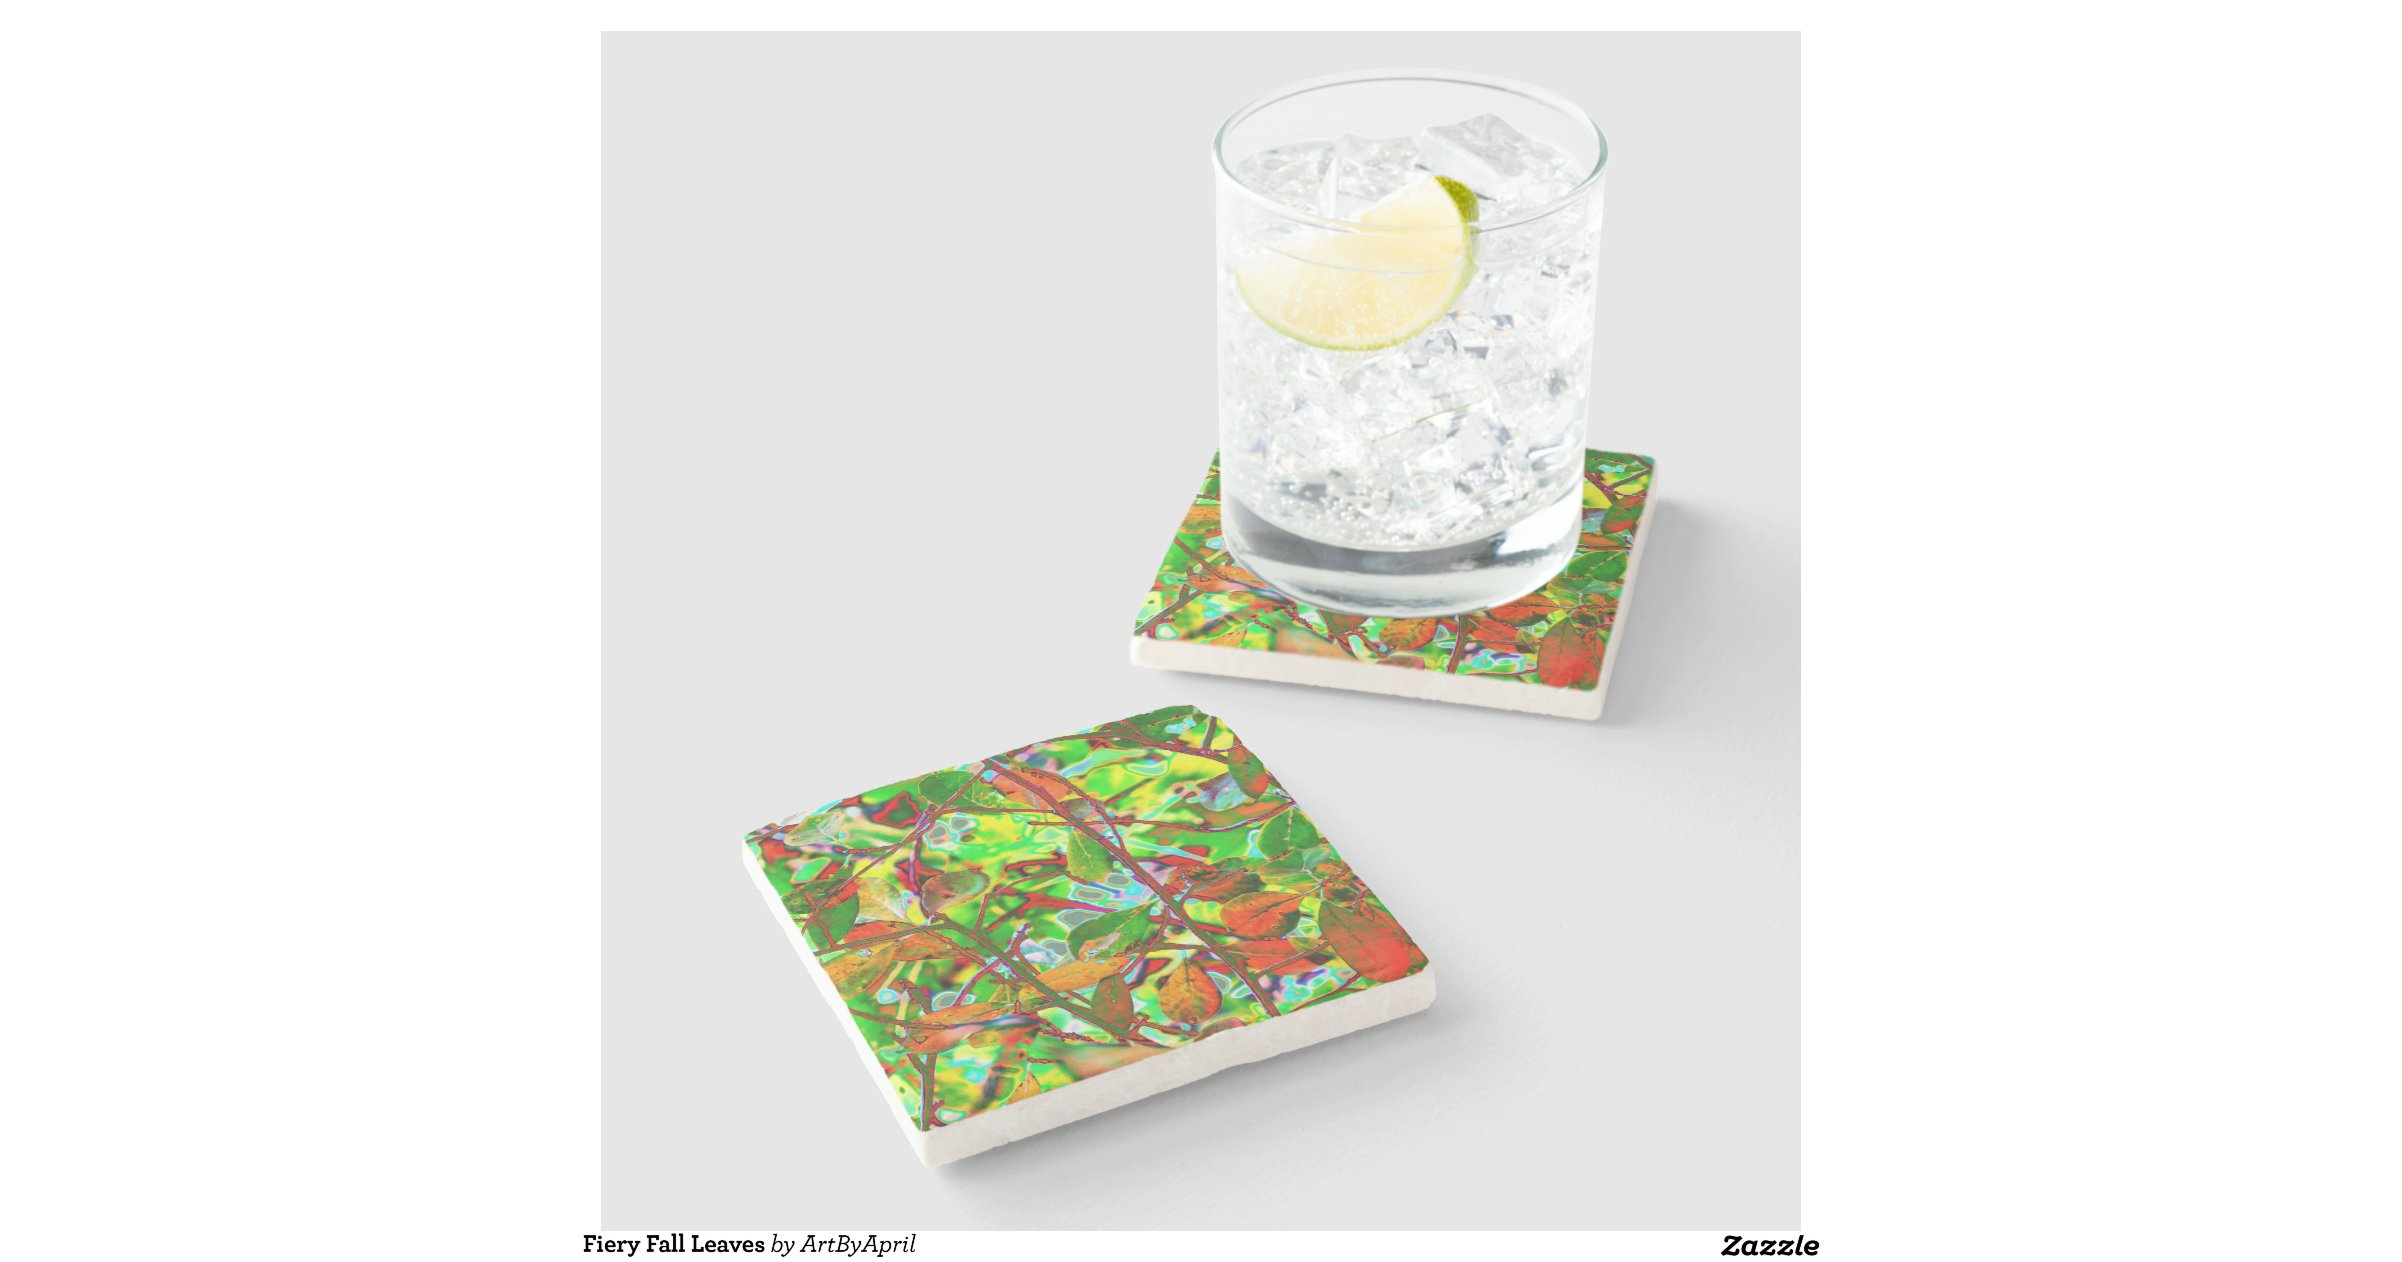 Fiery fall leaves stone beverage coaster zazzle - Stone coasters for drinks ...